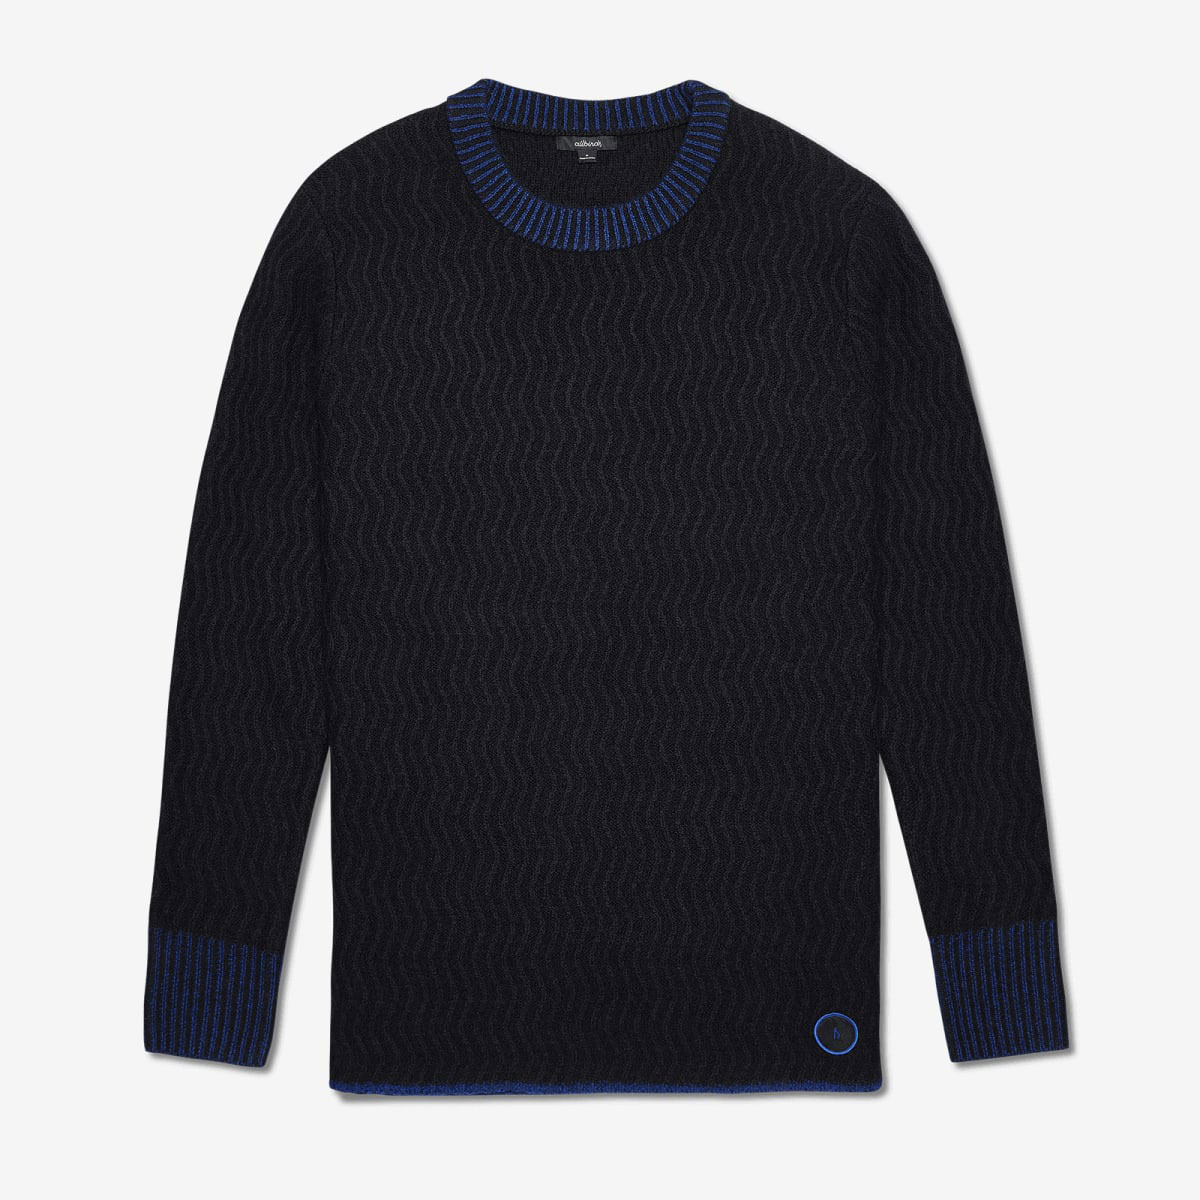 Gifts for boyfriend, gift ideas for boyfriends - For the Eco-Conscious Guy: Allbirds Men's Wool Jumper